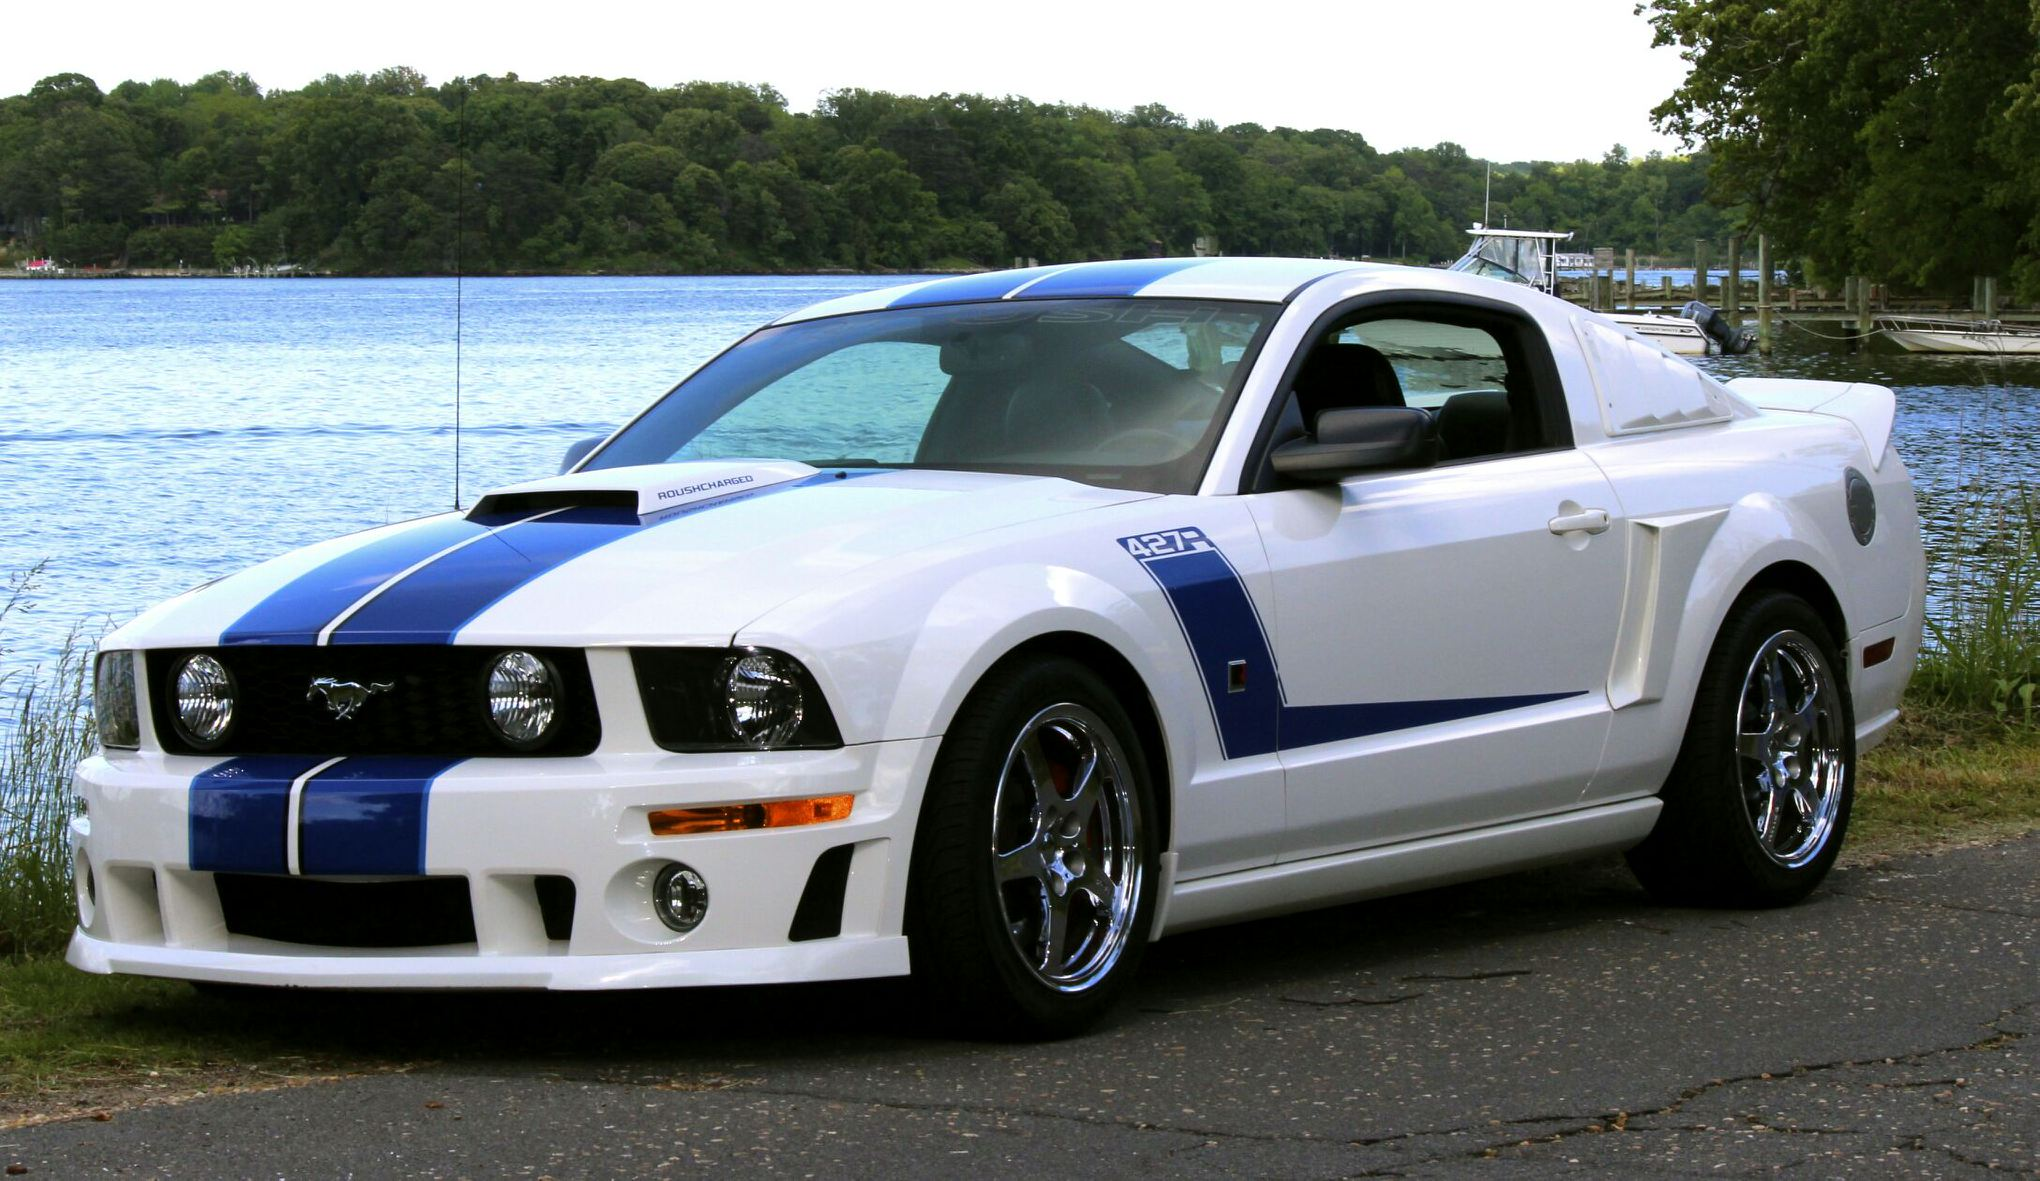 roush 427r 2007 supercharged mustang ford 5th mileage low gen fs svtperformance mustangcarplace cars